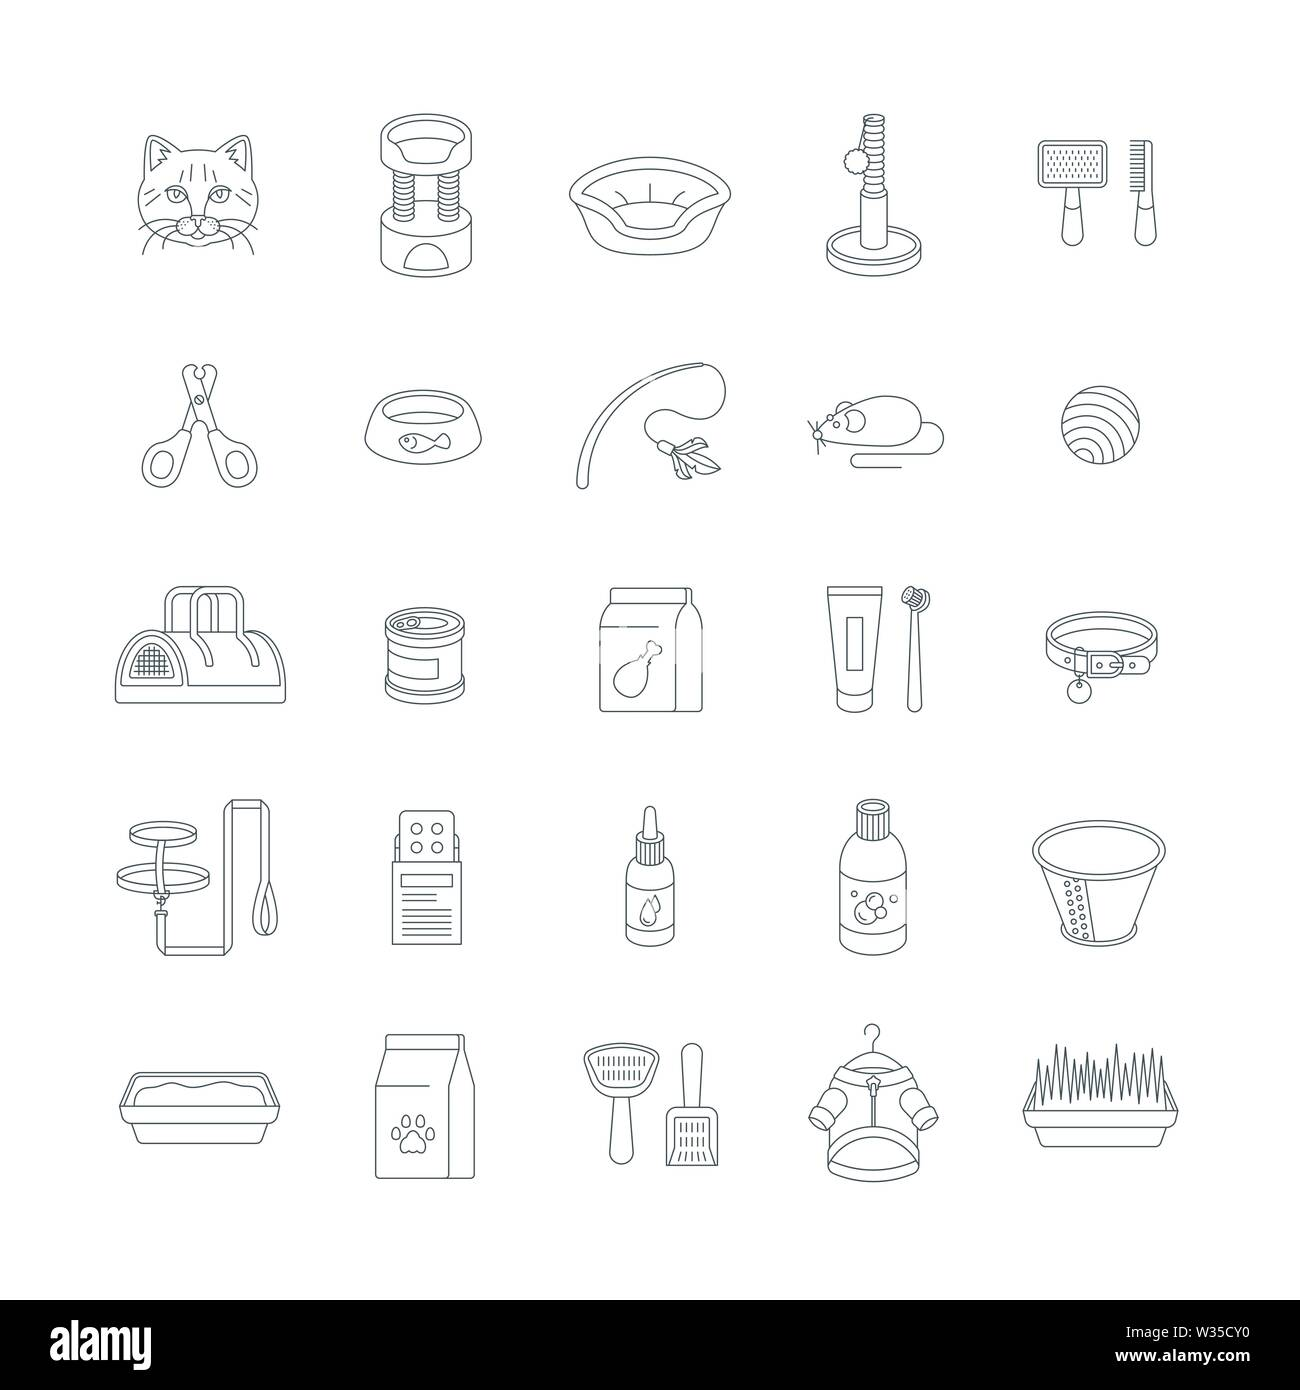 Cat accessories vector flat thin line icons. Pet shop equipment outline illustration. Domestic animal care supplies. Items for feeding, grooming, play - Stock Image